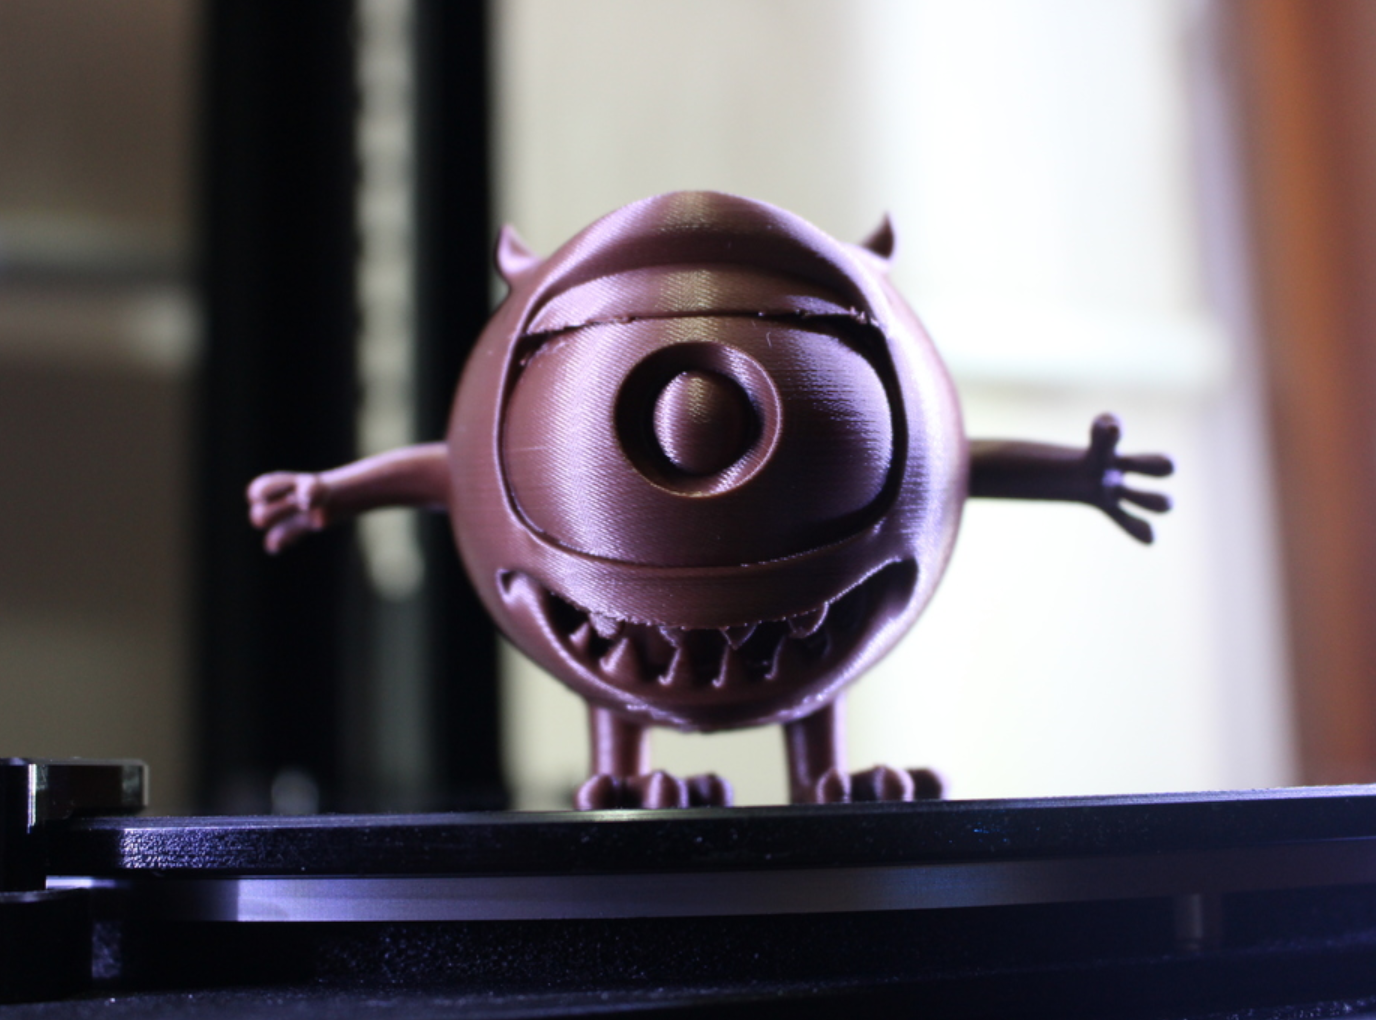 Capture d'écran 2017-11-27 à 10.21.58.png Download free STL file Big Eye Monster • 3D printable template, ROYLO